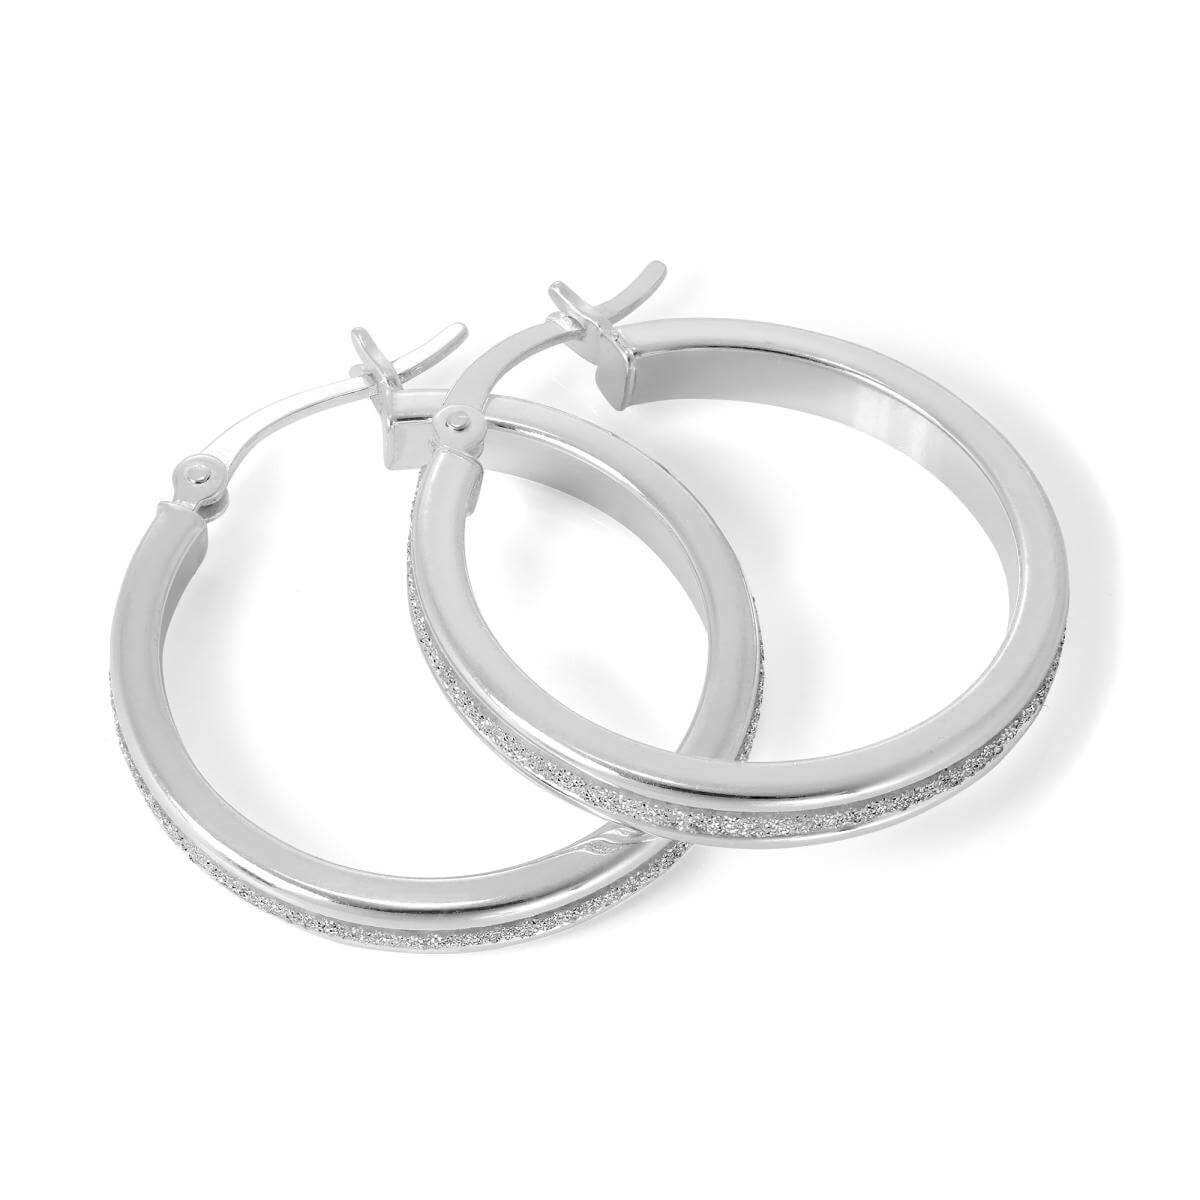 Frosted Sterling Silver 25mm Hoop Earrings